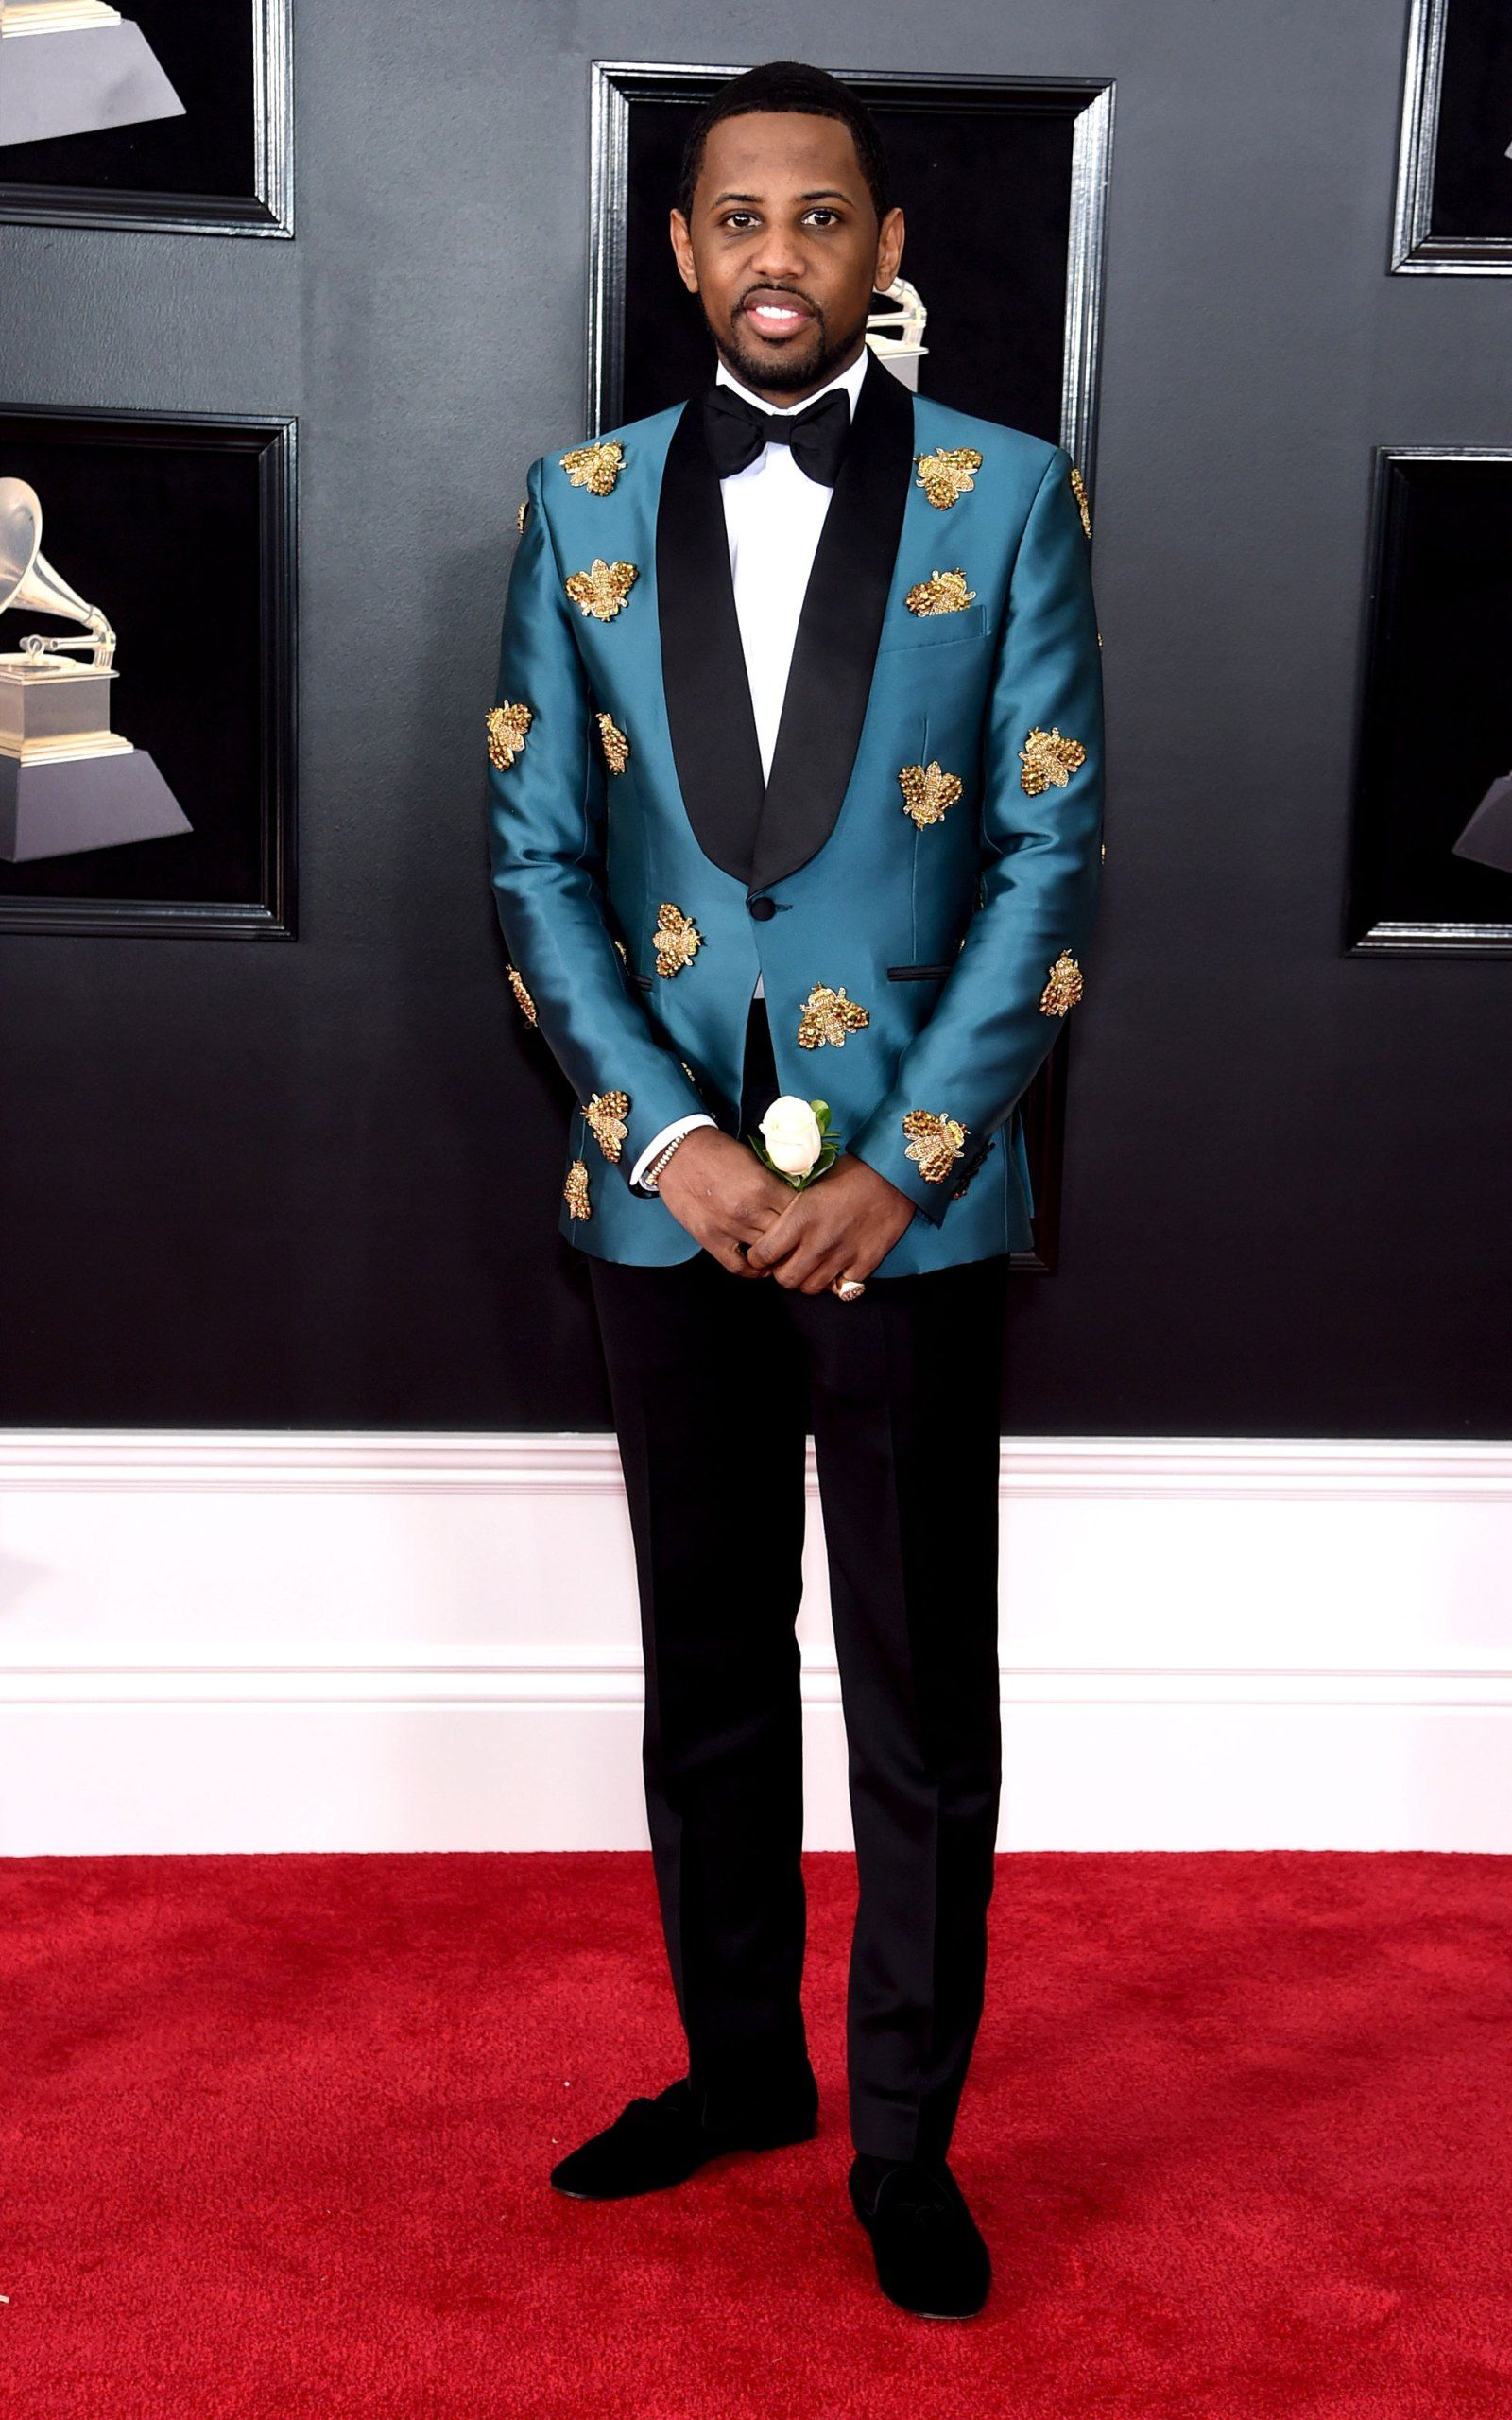 Photo of Fabolous in the 2018 Grammy Awards. This suit shows dandy fashion  because of the bold color and detailed beading on the jacket. e6a27522f4